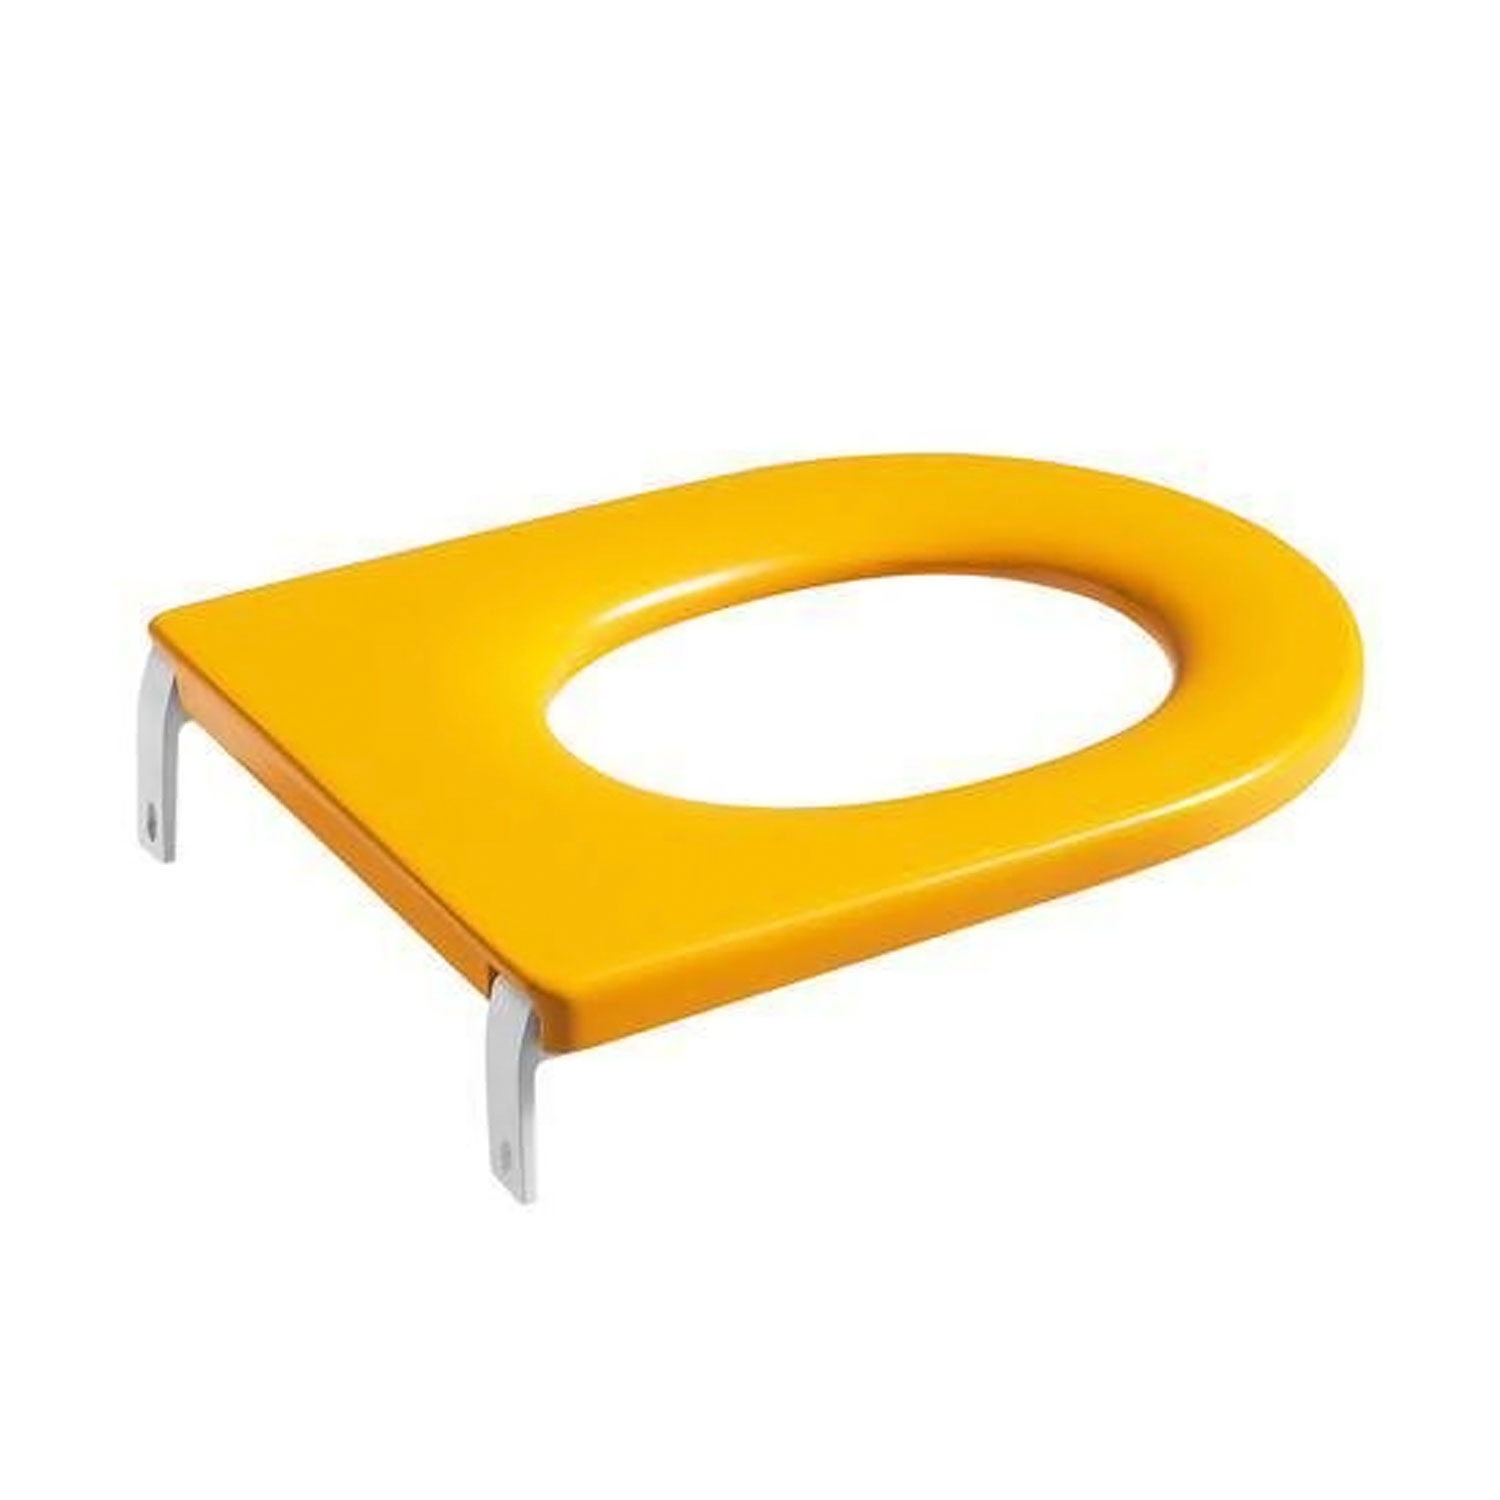 Roca Happening Floor-standing Toilet for Kids 415mm Projection - Yellow Seat